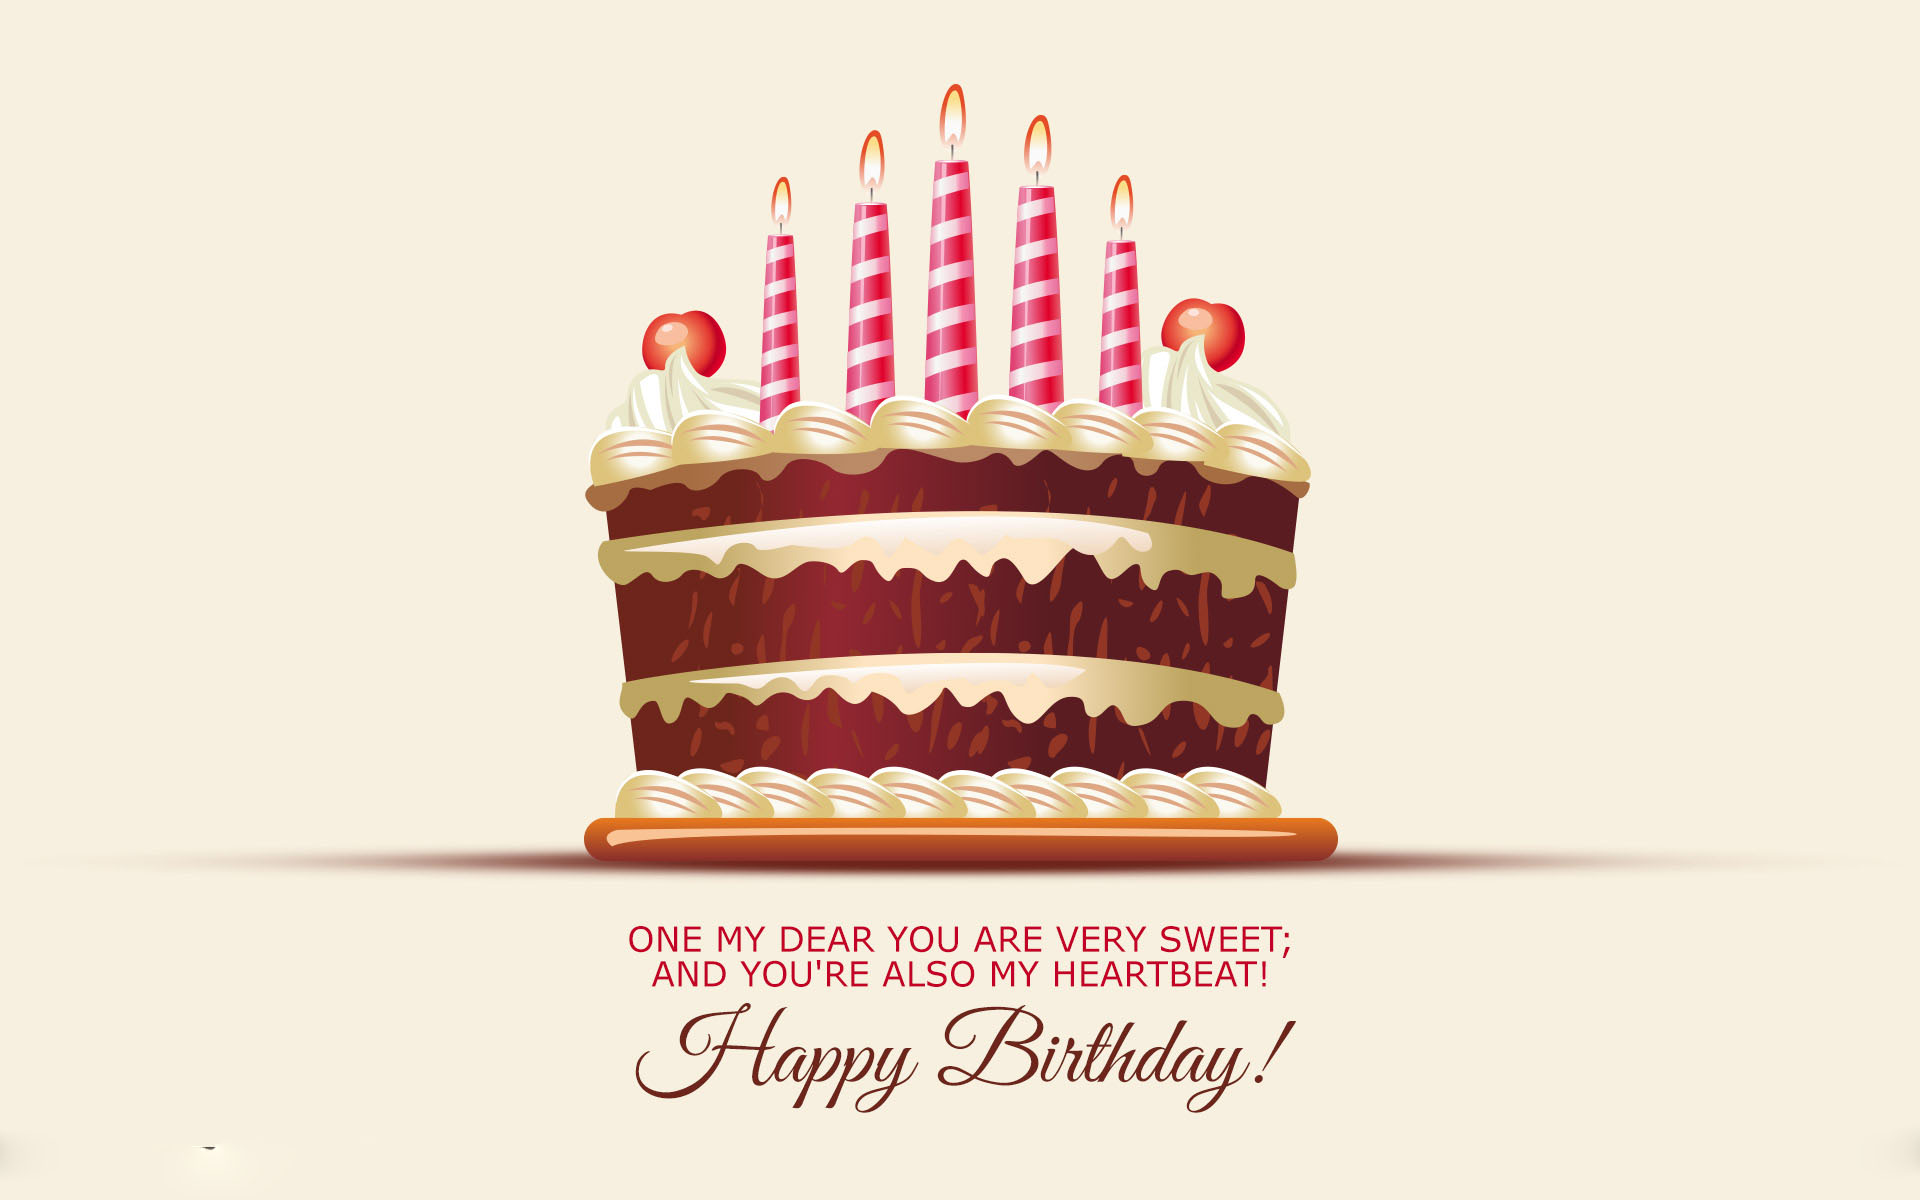 Happy birthday wishes sms messages 13 daily roabox daily happy birthday wishes sms messages kristyandbryce Gallery